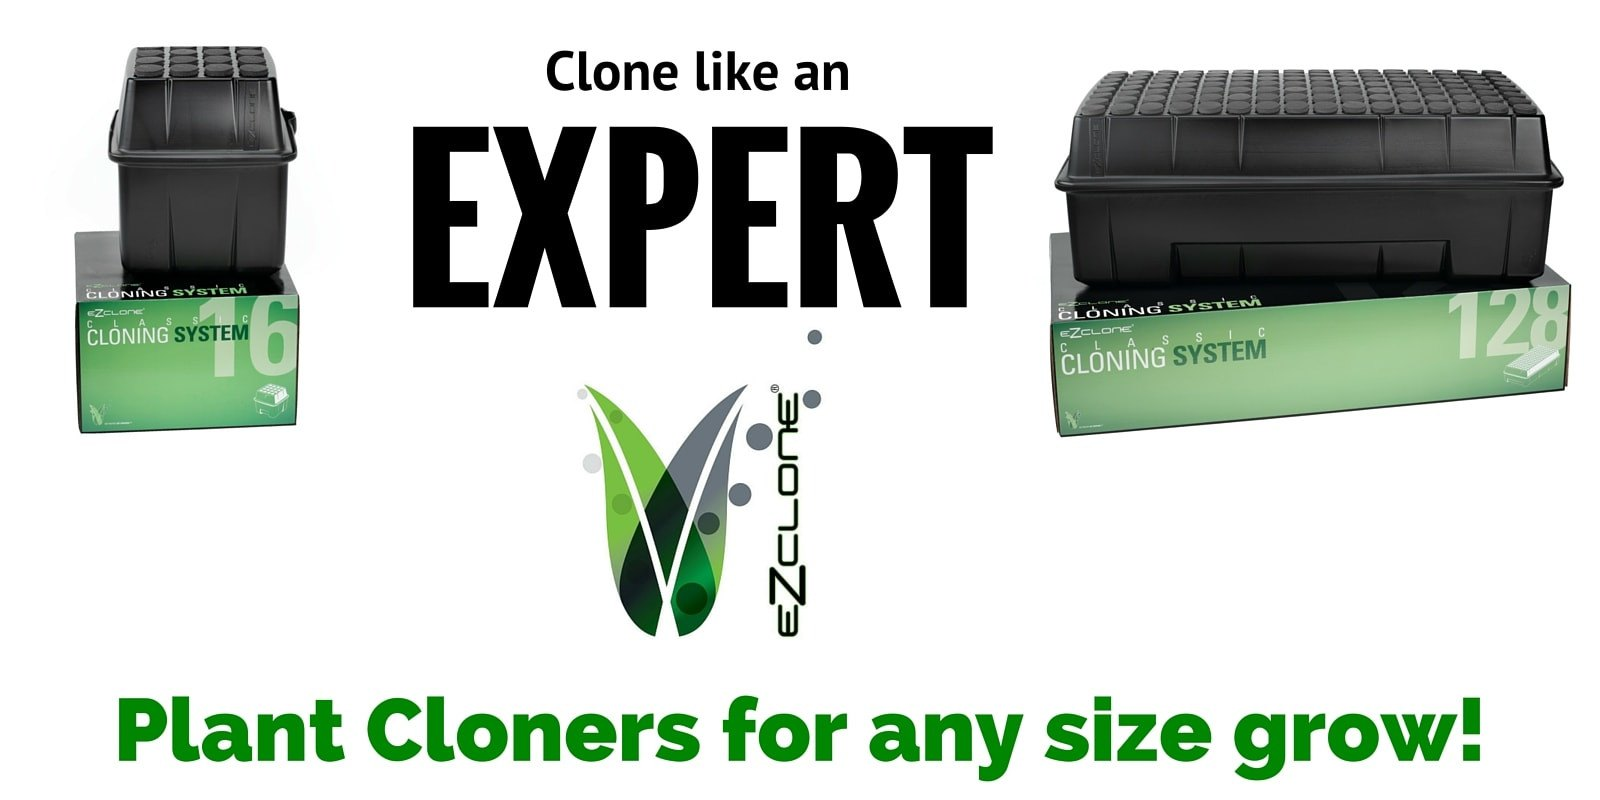 Clone Like an Expert with EZ Clone Plant Cloner Machines